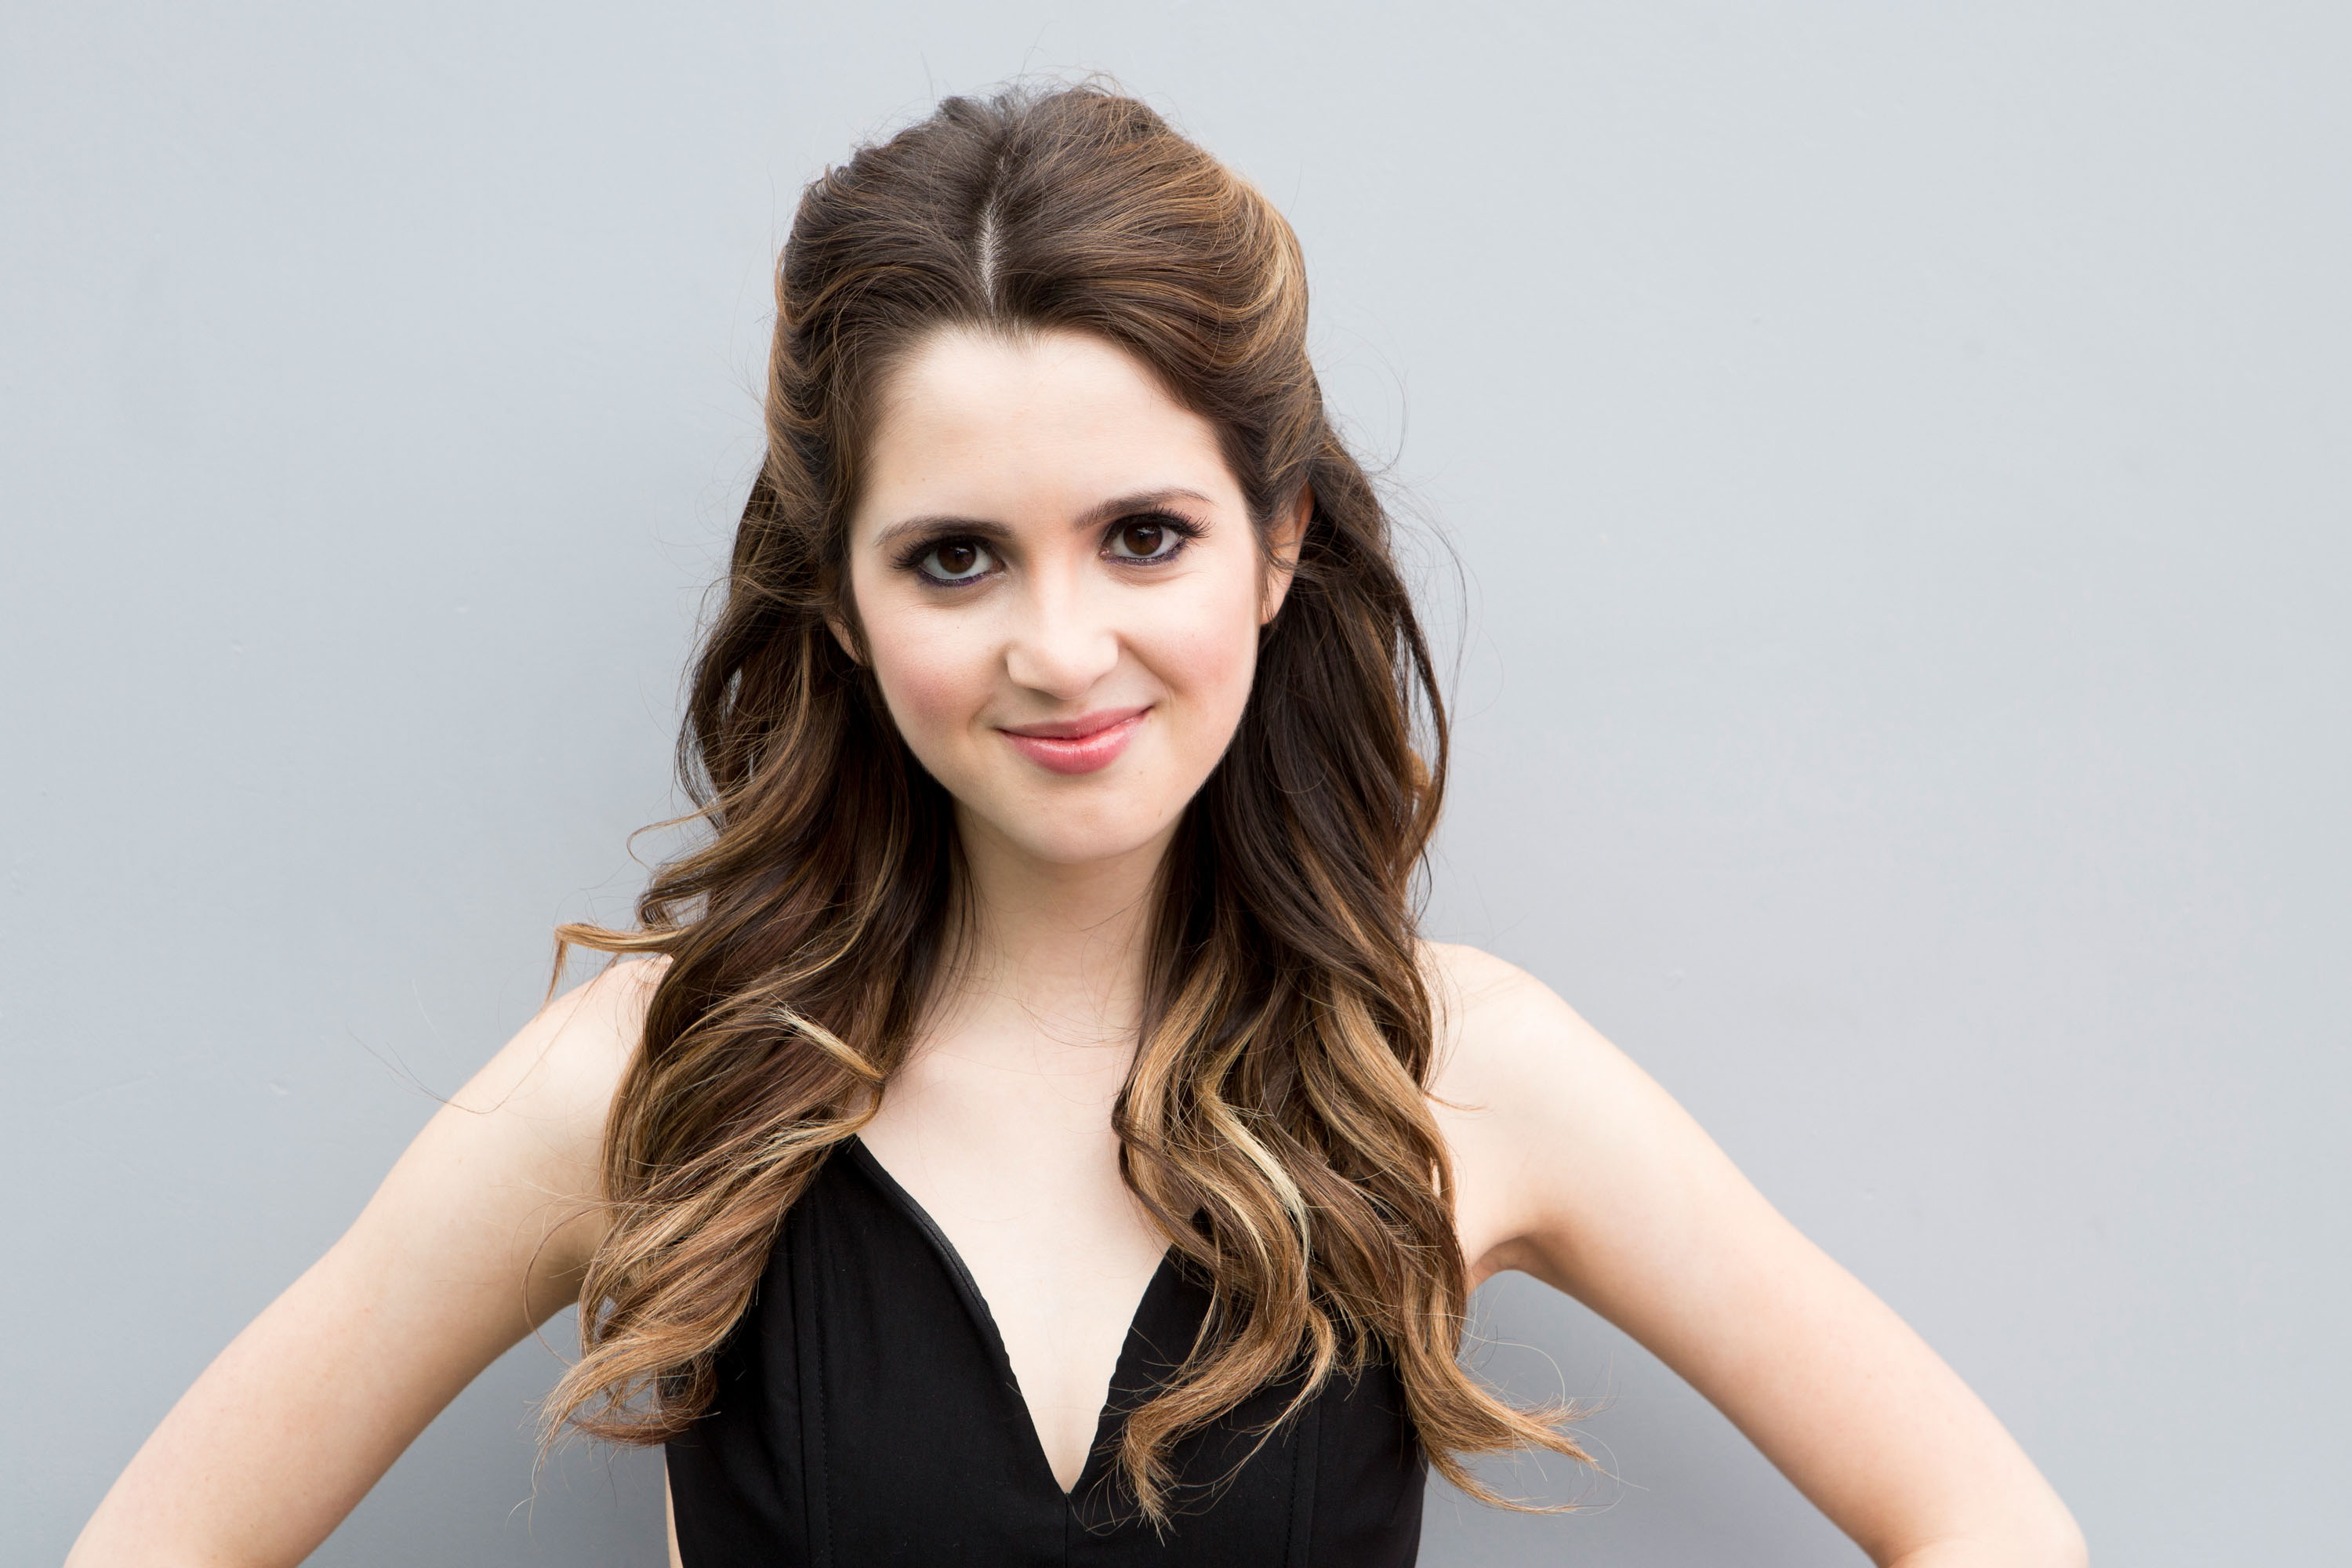 Laura marano wallpapers images photos pictures backgrounds for Marano arredamenti